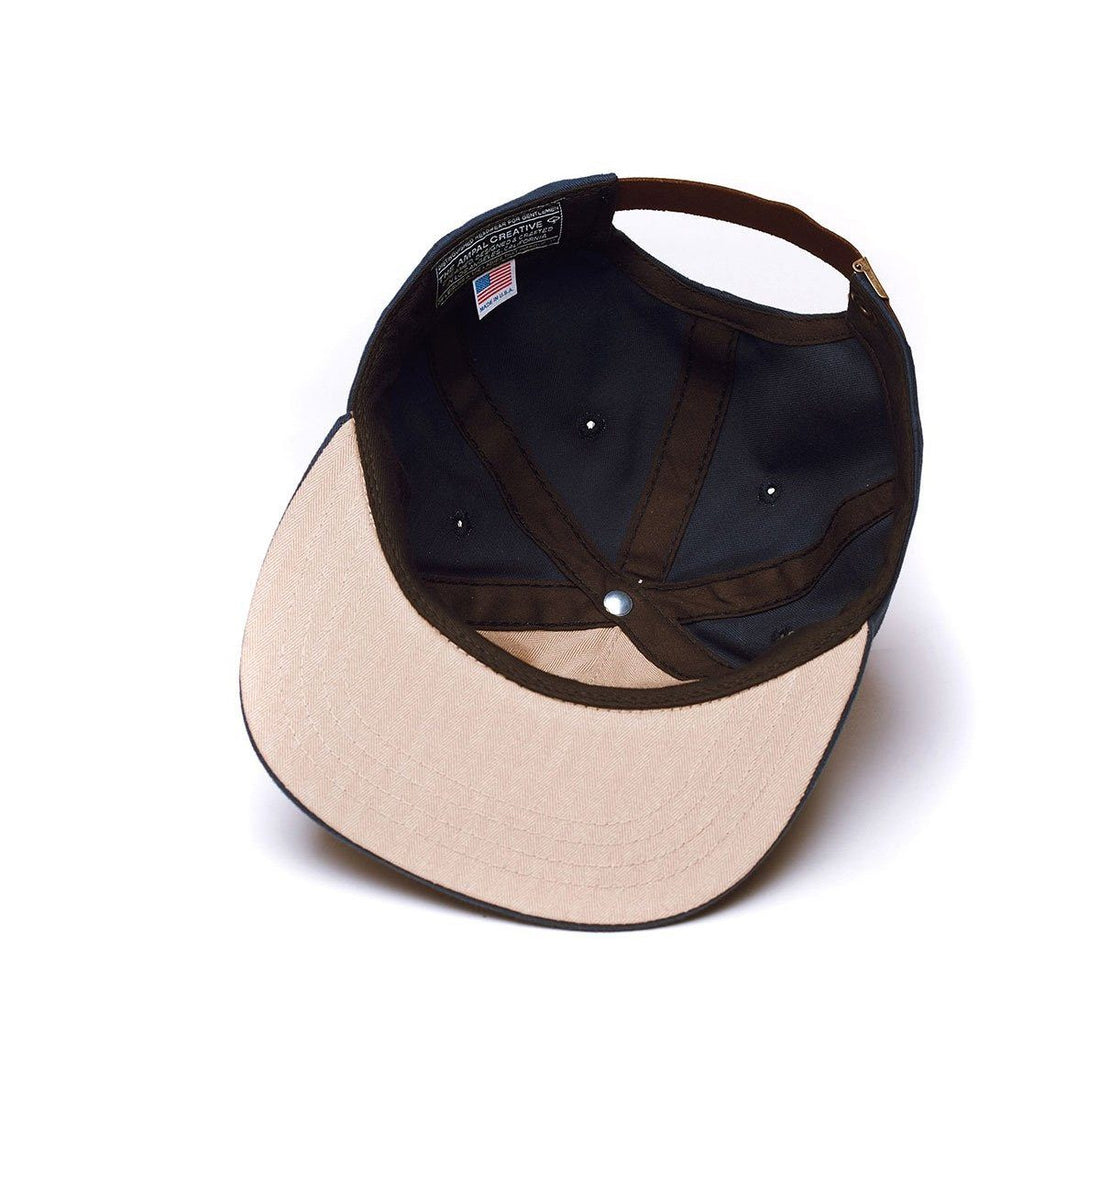 The Ampal Creative California Pennant Strapback - Black - Headwear - Iron and Resin